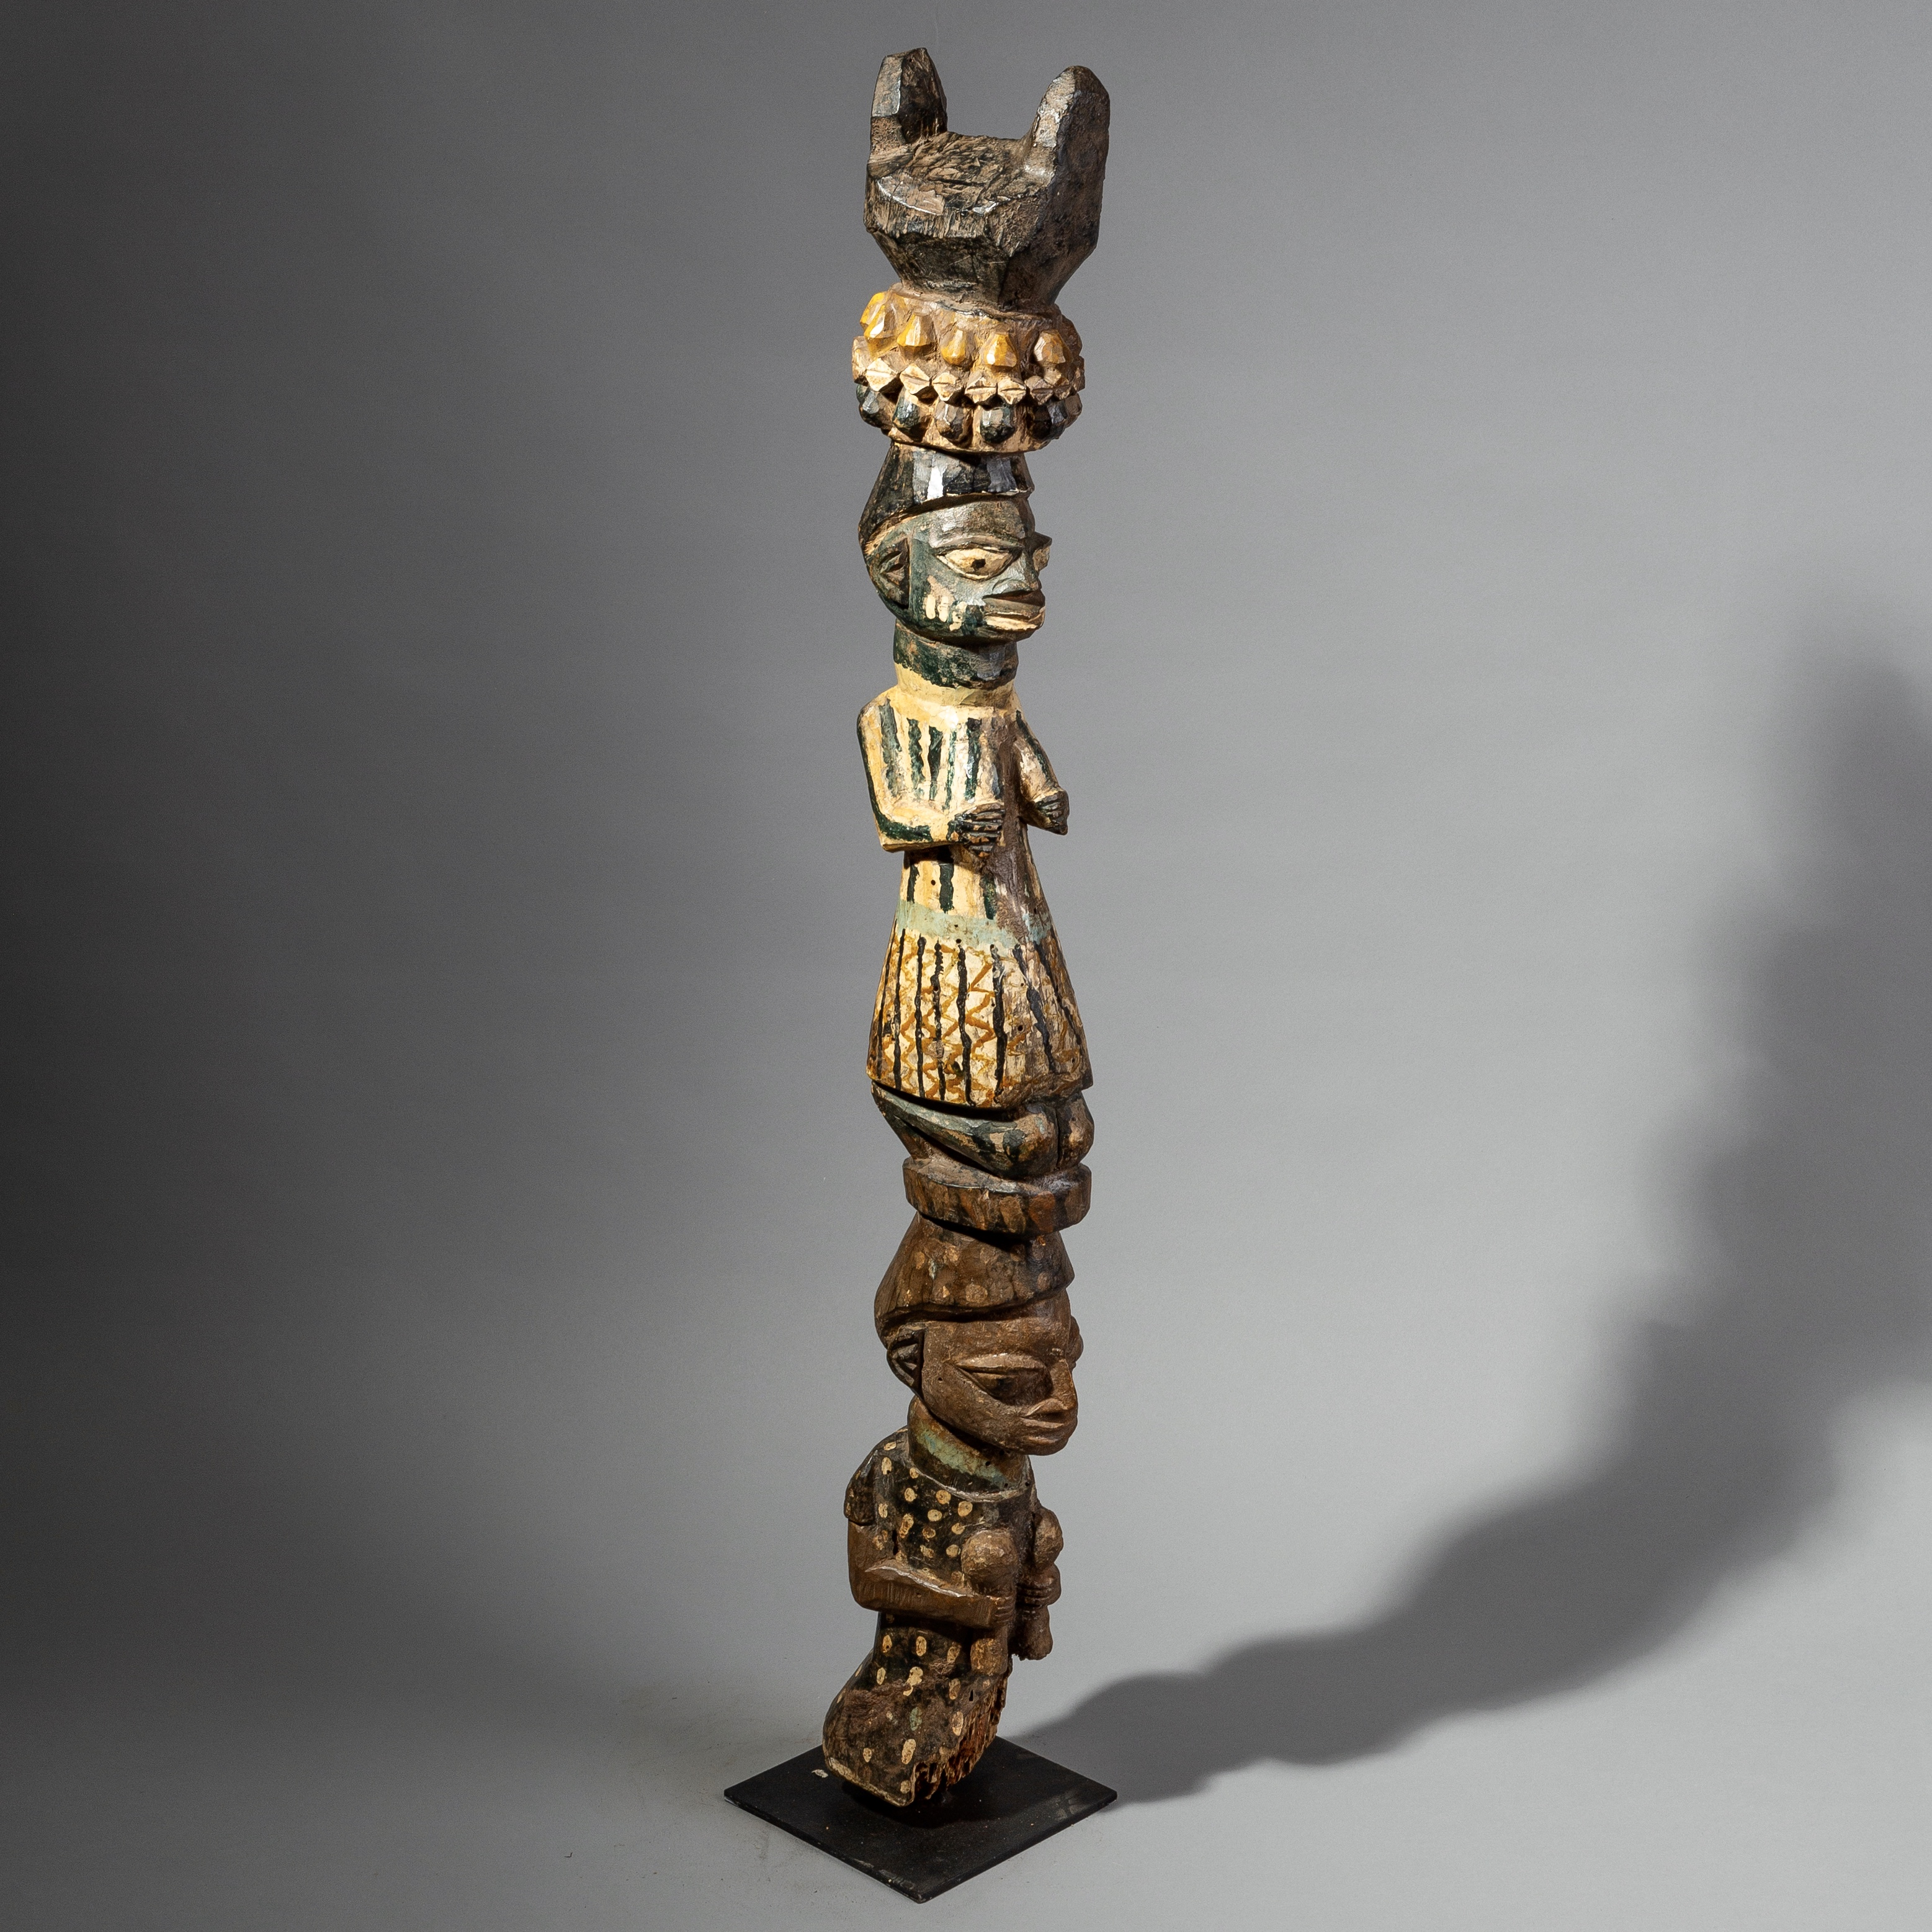 A LARGE DETAILED FIGURATIVE POST FROM THE YORUBA TRIBE OF NIGERIA ( No 1766 )